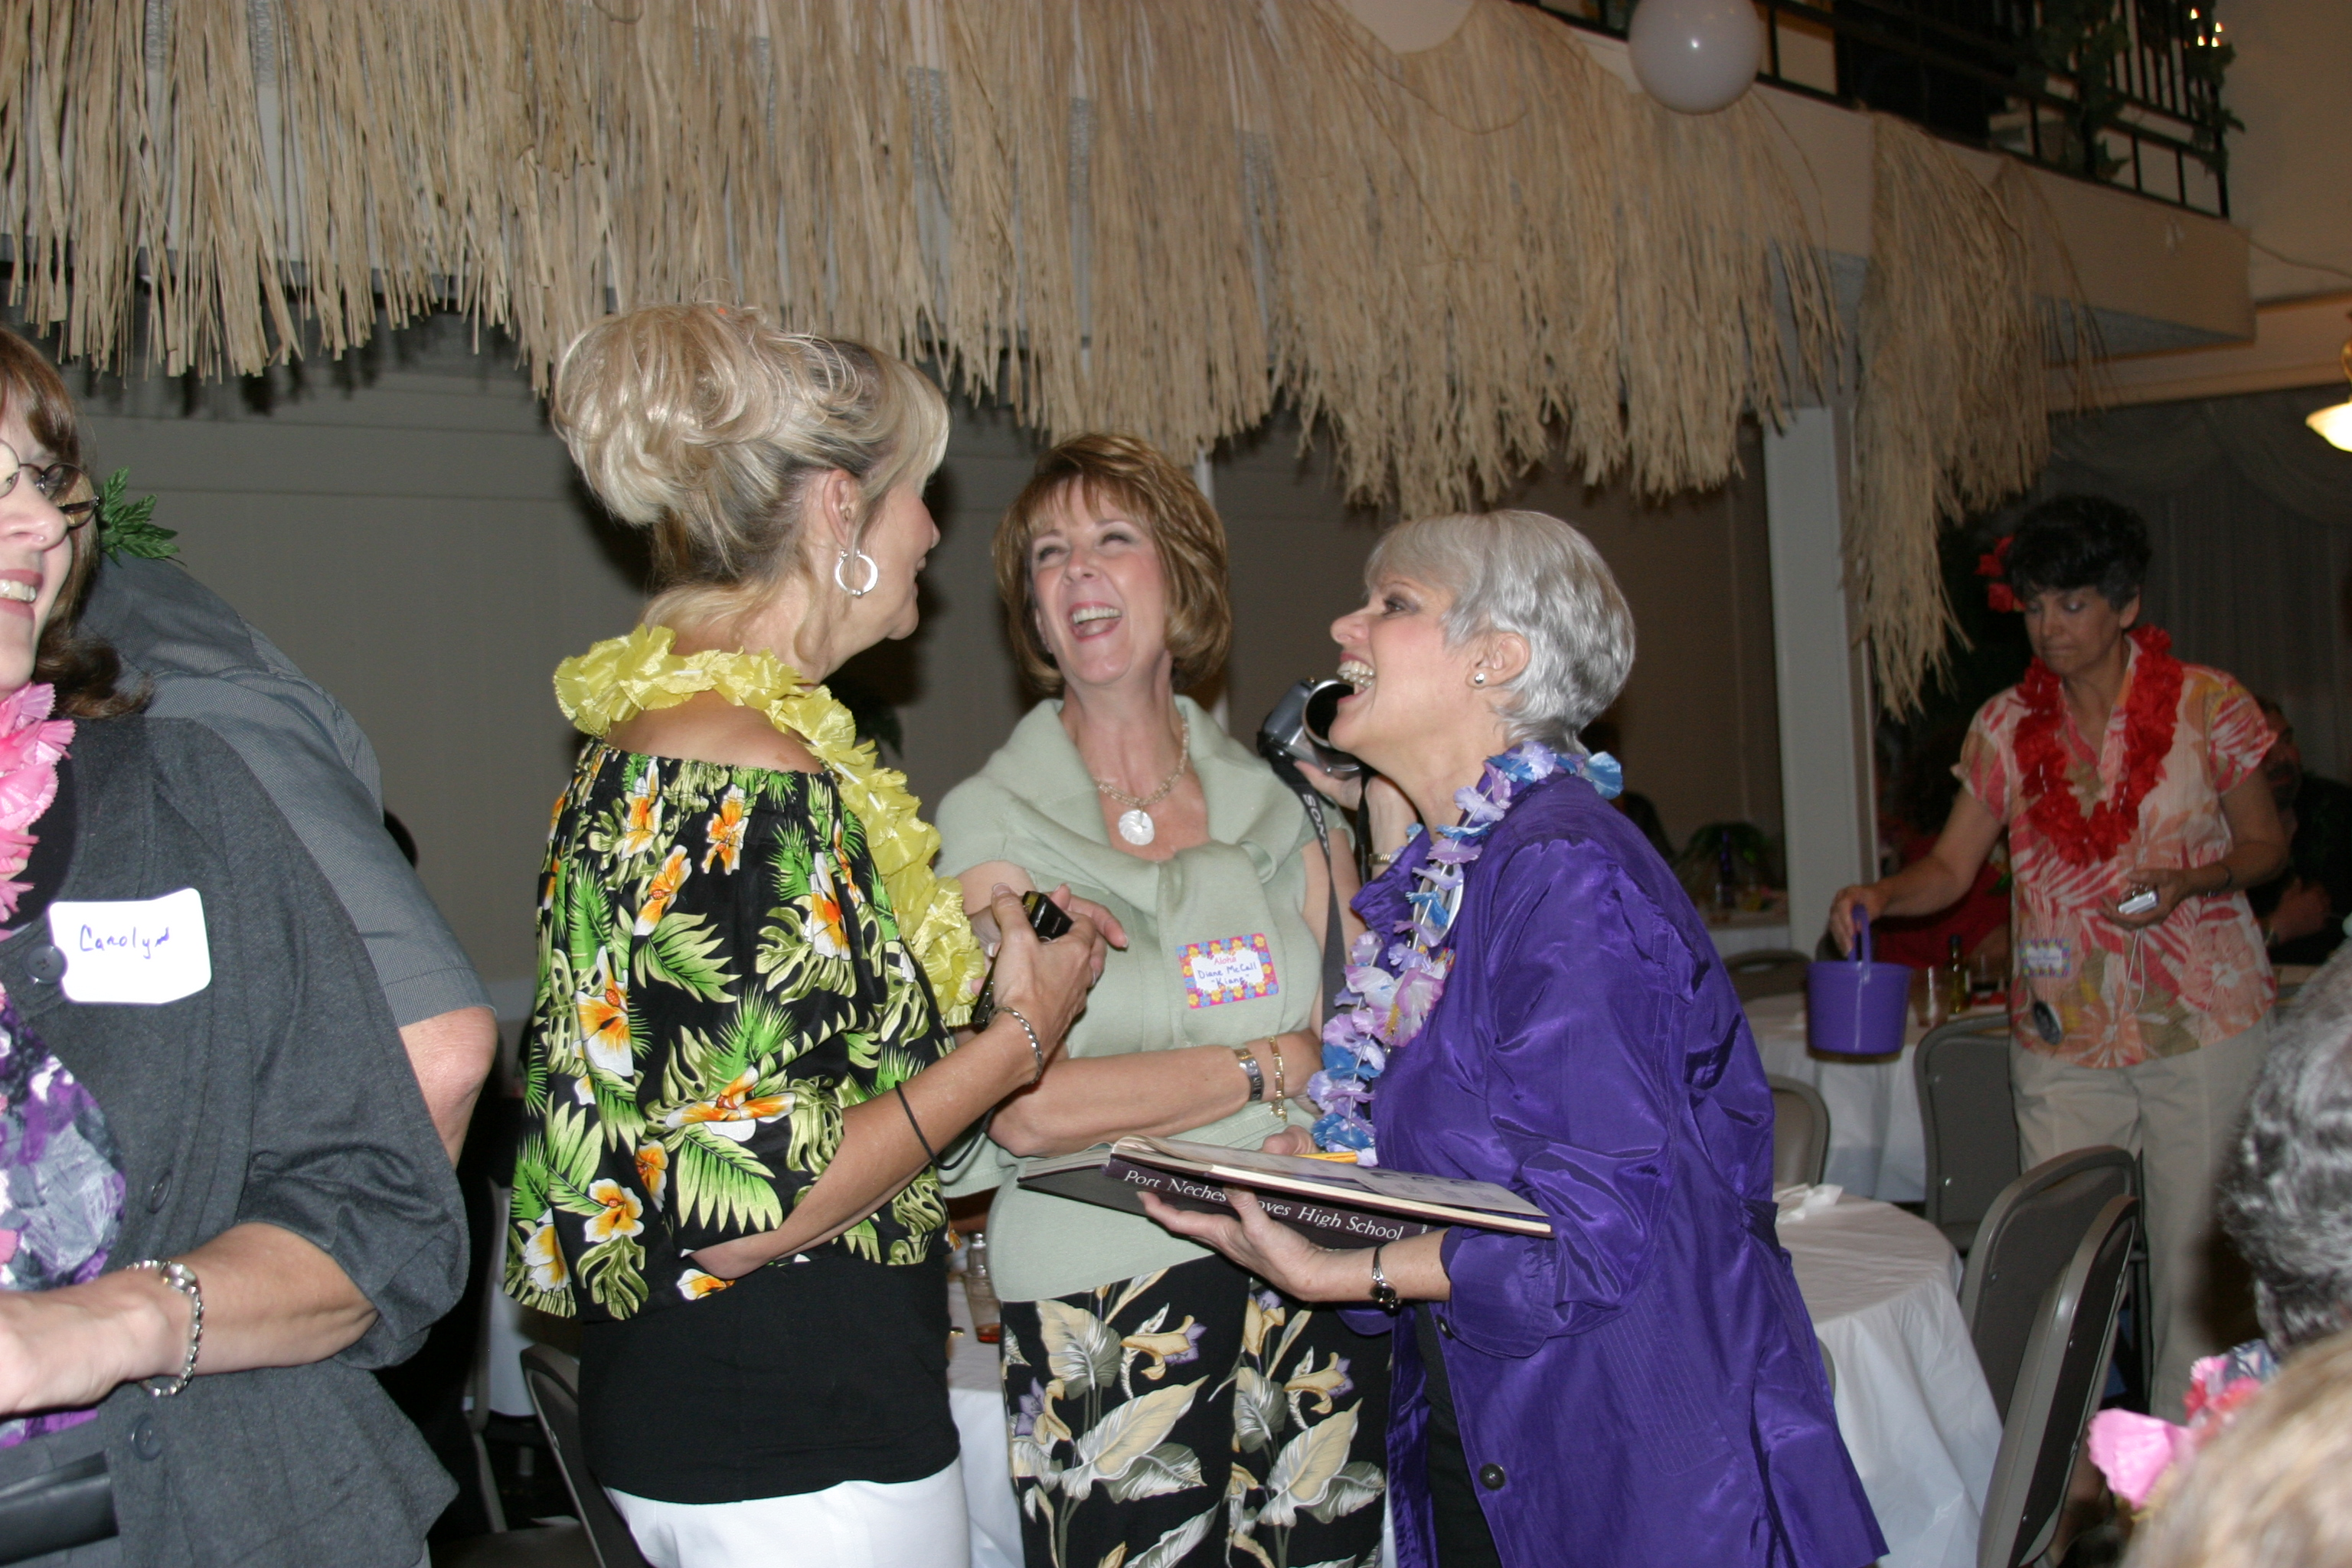 Roxy Miller, Dianne Miller and Becky Powell